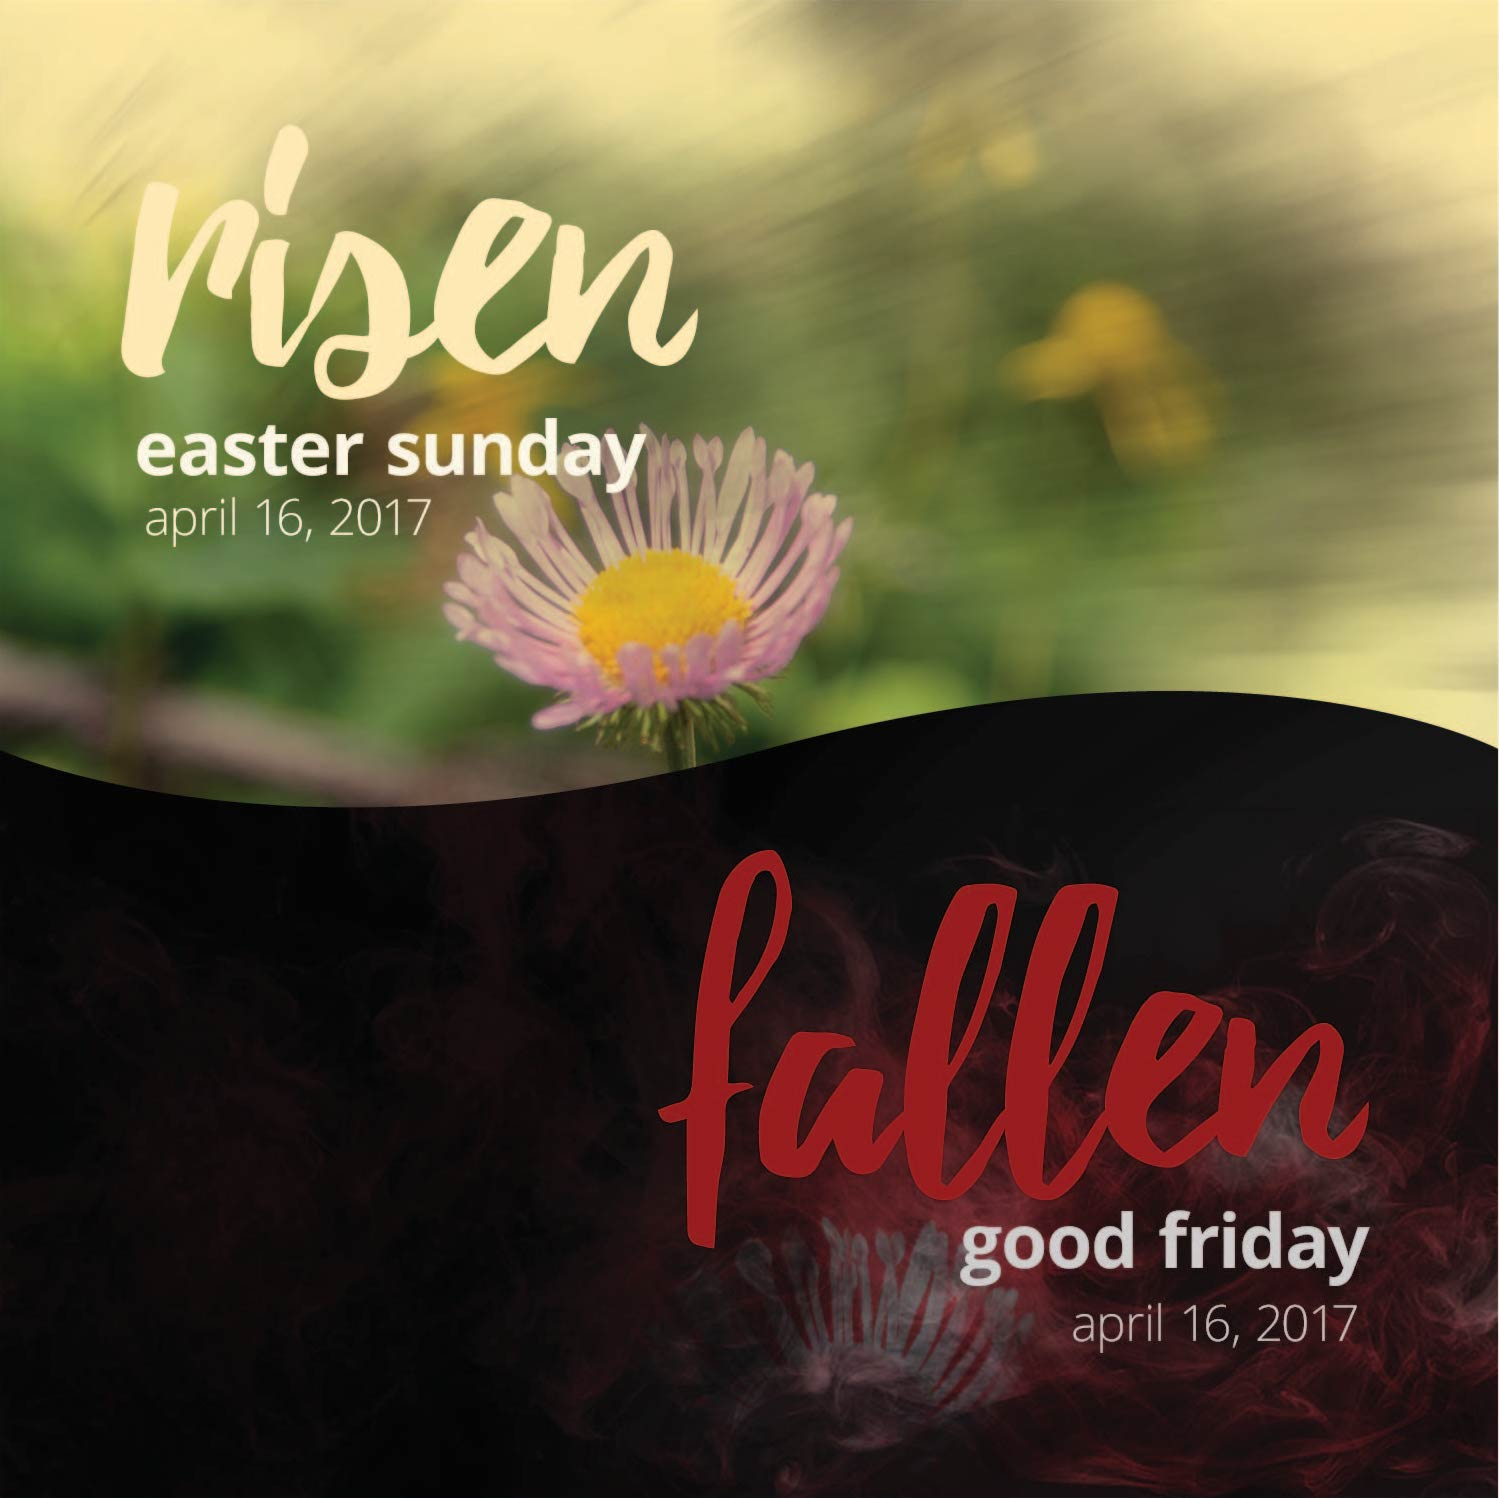 easter 2017 image